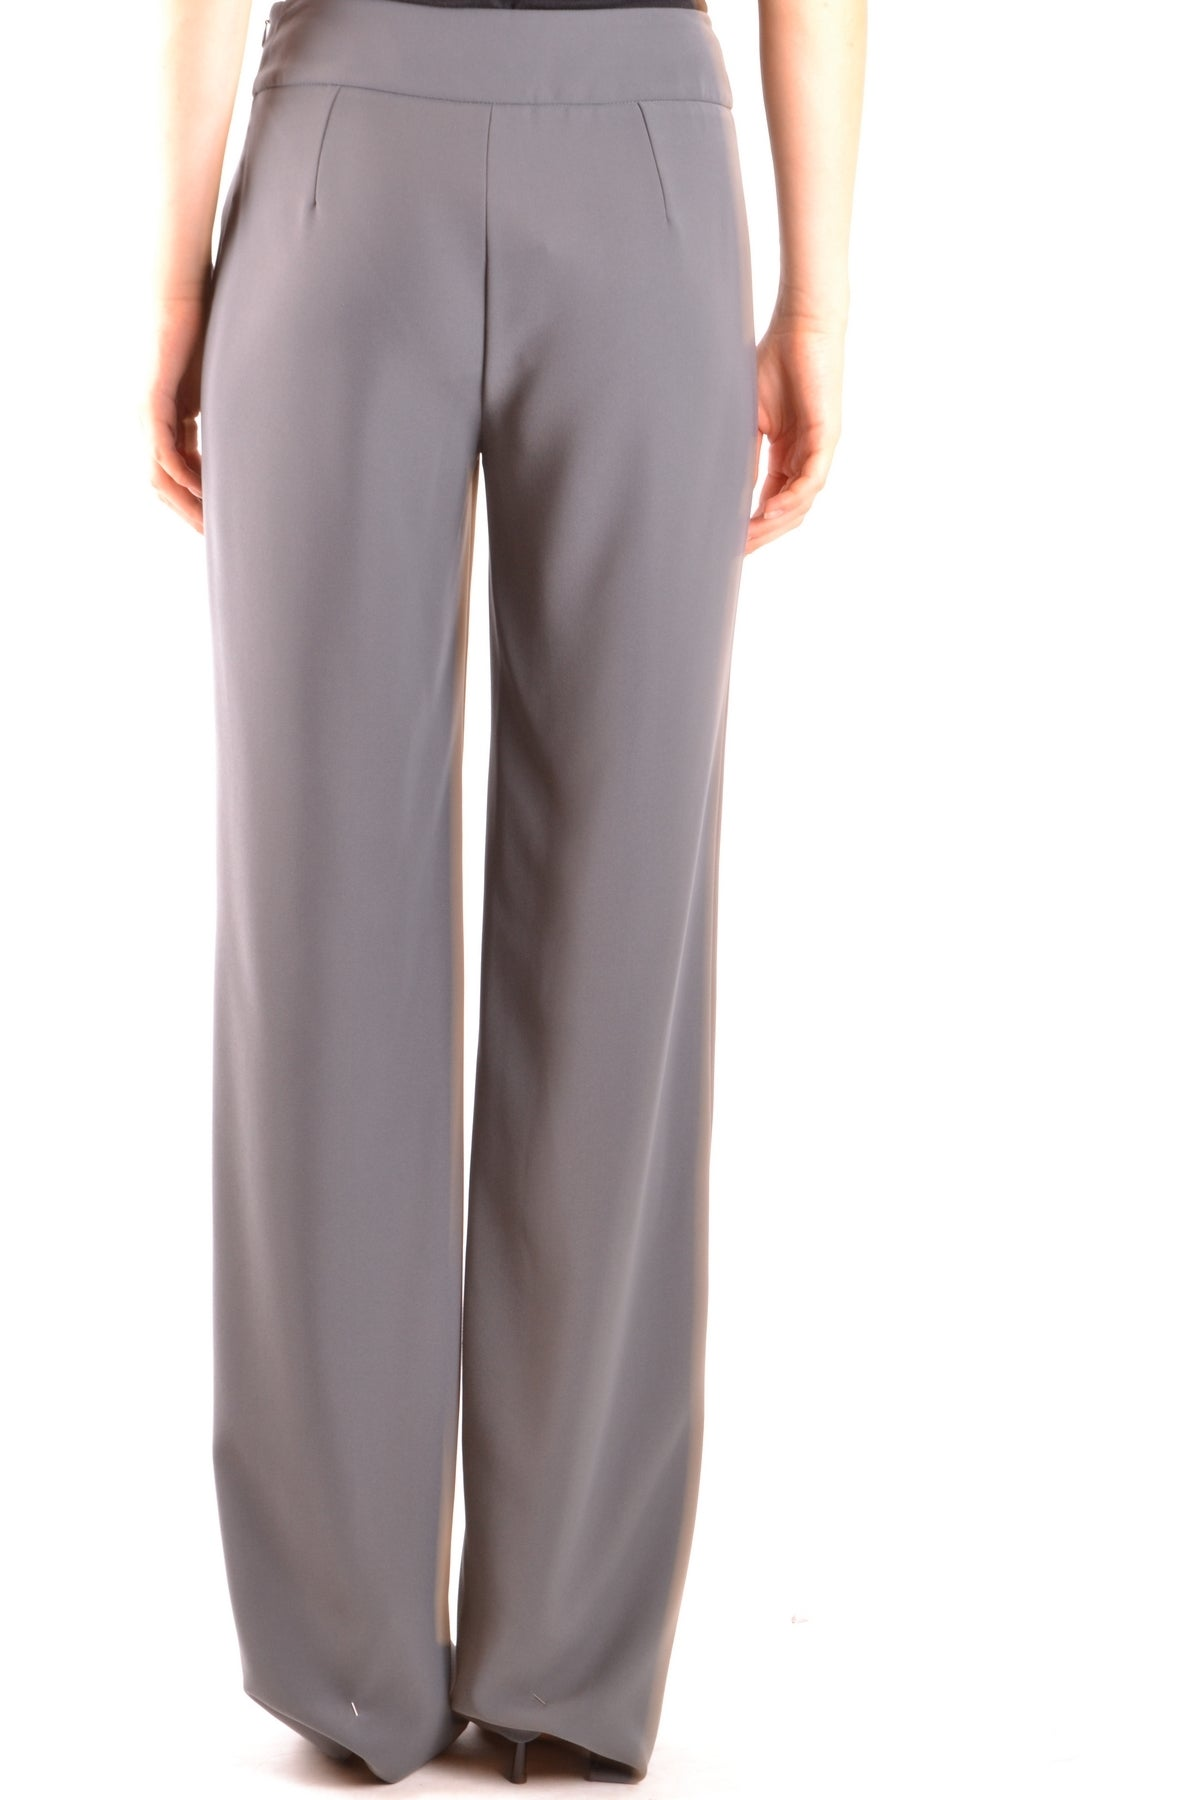 Trousers Armani Collezioni-Trousers - WOMAN-Product Details Terms: New With LabelYear: 2018Main Color: GraySeason: Fall / WinterMade In: ChinaManufacturer Part Number: Vmp09T Vm015 628Size: ItGender: WomanClothing Type: TrousersComposition: Polyester 100%-Keyomi-Sook